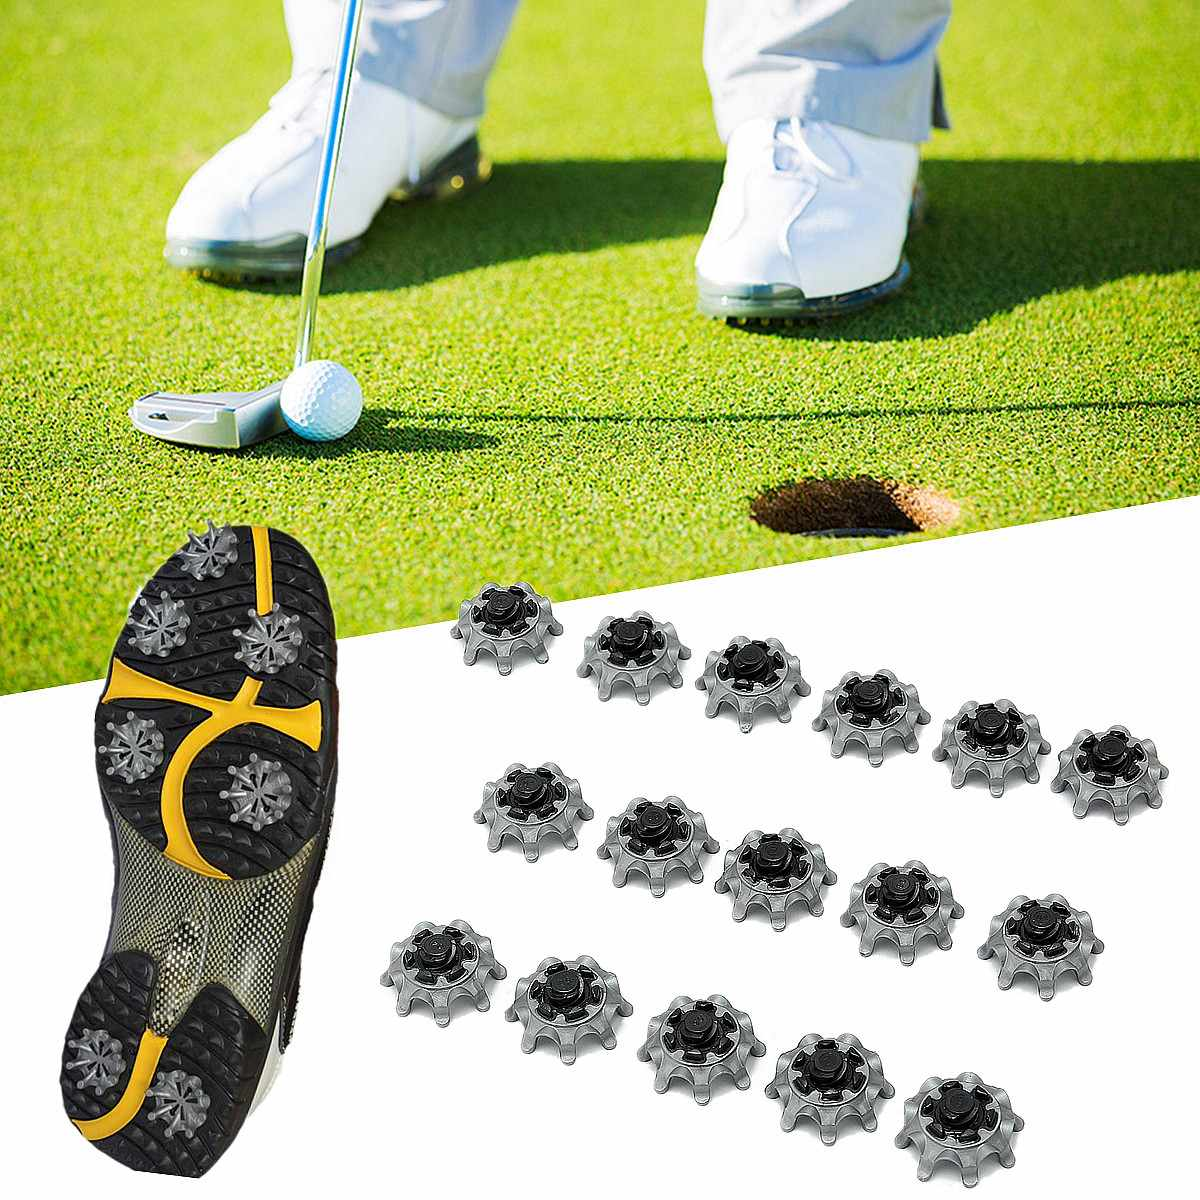 BSAID 16 pcs/lot Golf Shoes Spikes Replaceable Pins 1/4 Turn Studs Cleats Fast Twist Shoe Spikes Golf Practice Accessories цена и фото